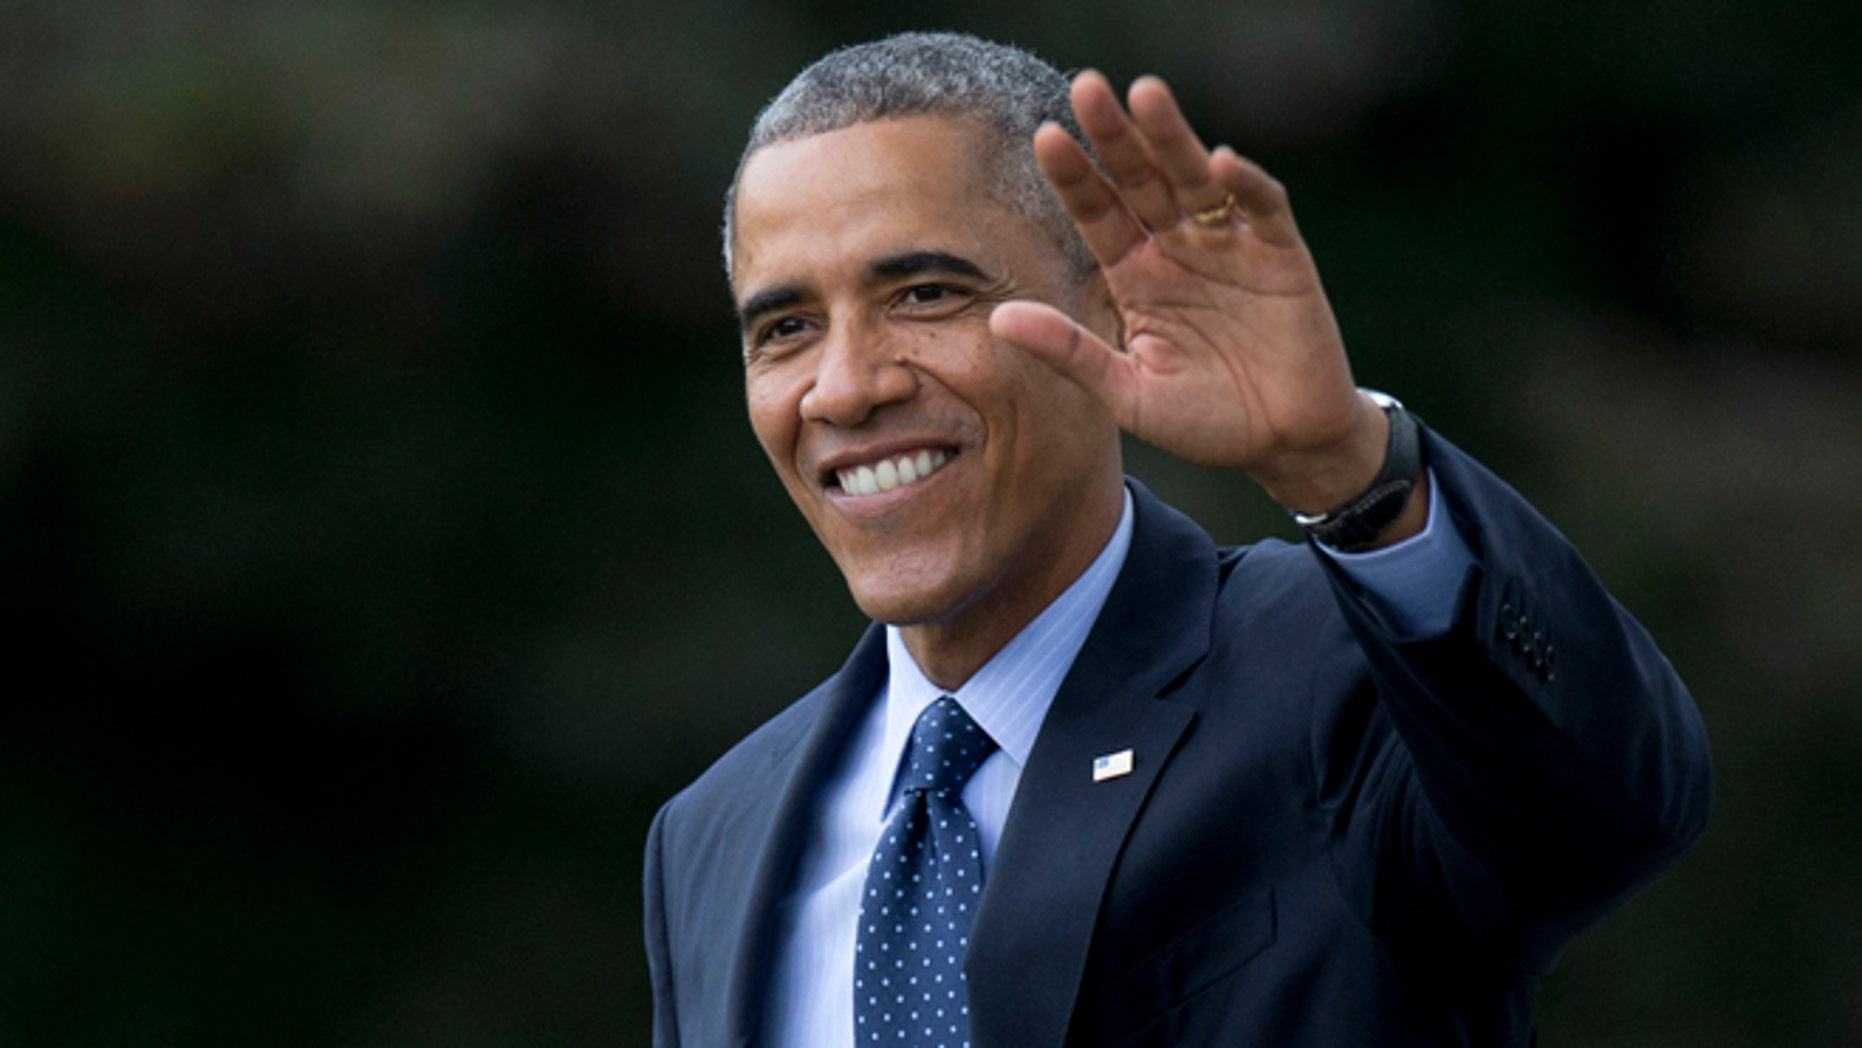 In this Tuesday, Oct. 7, 2014 photo, President Barack Obama waves as he walks across the South Lawn of the White House in Washington.